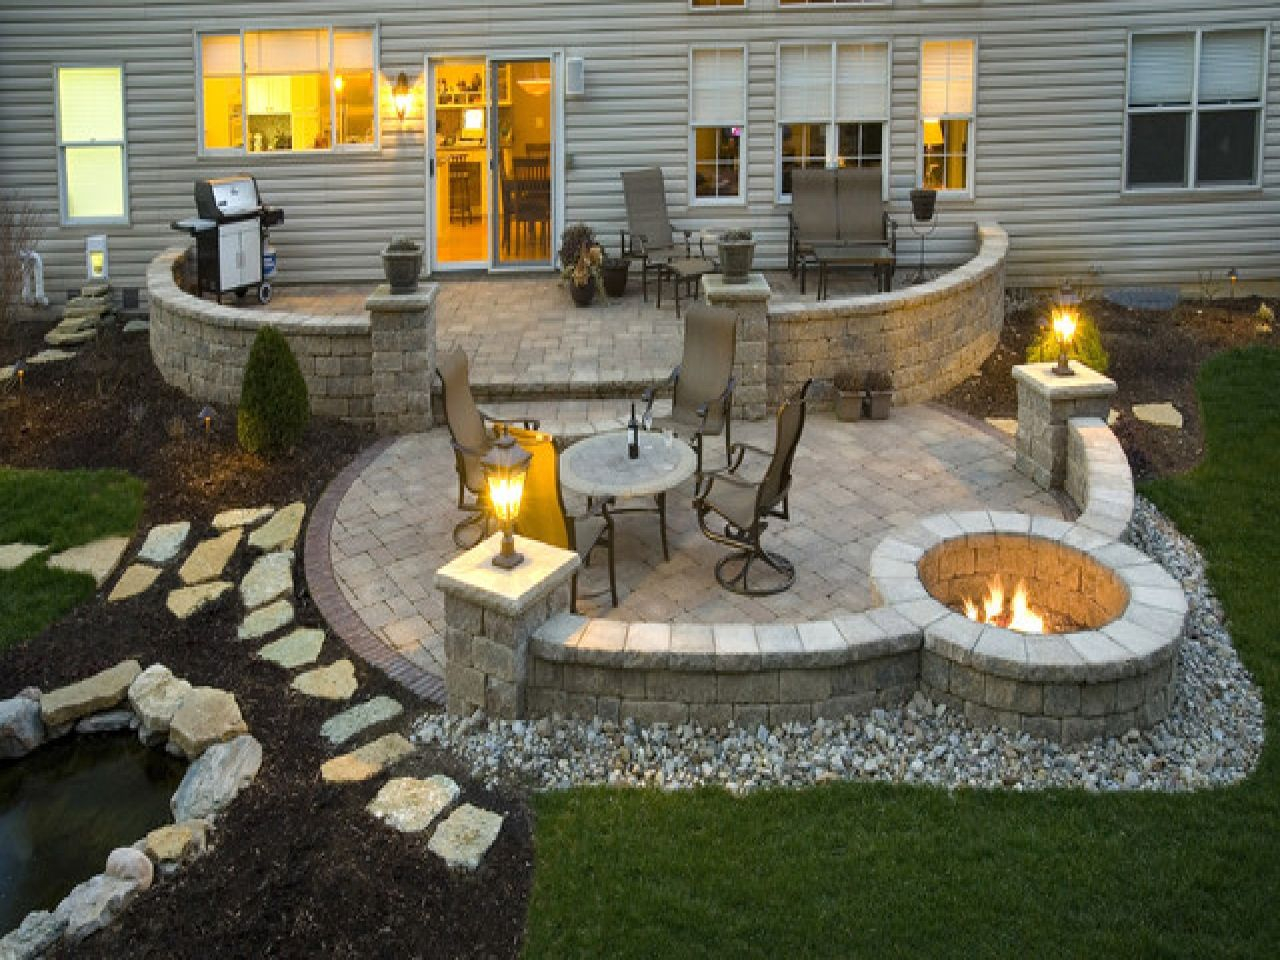 Flagstone Patio With Fire Pits Size 1280x960 Patio With in sizing 1280 X 960